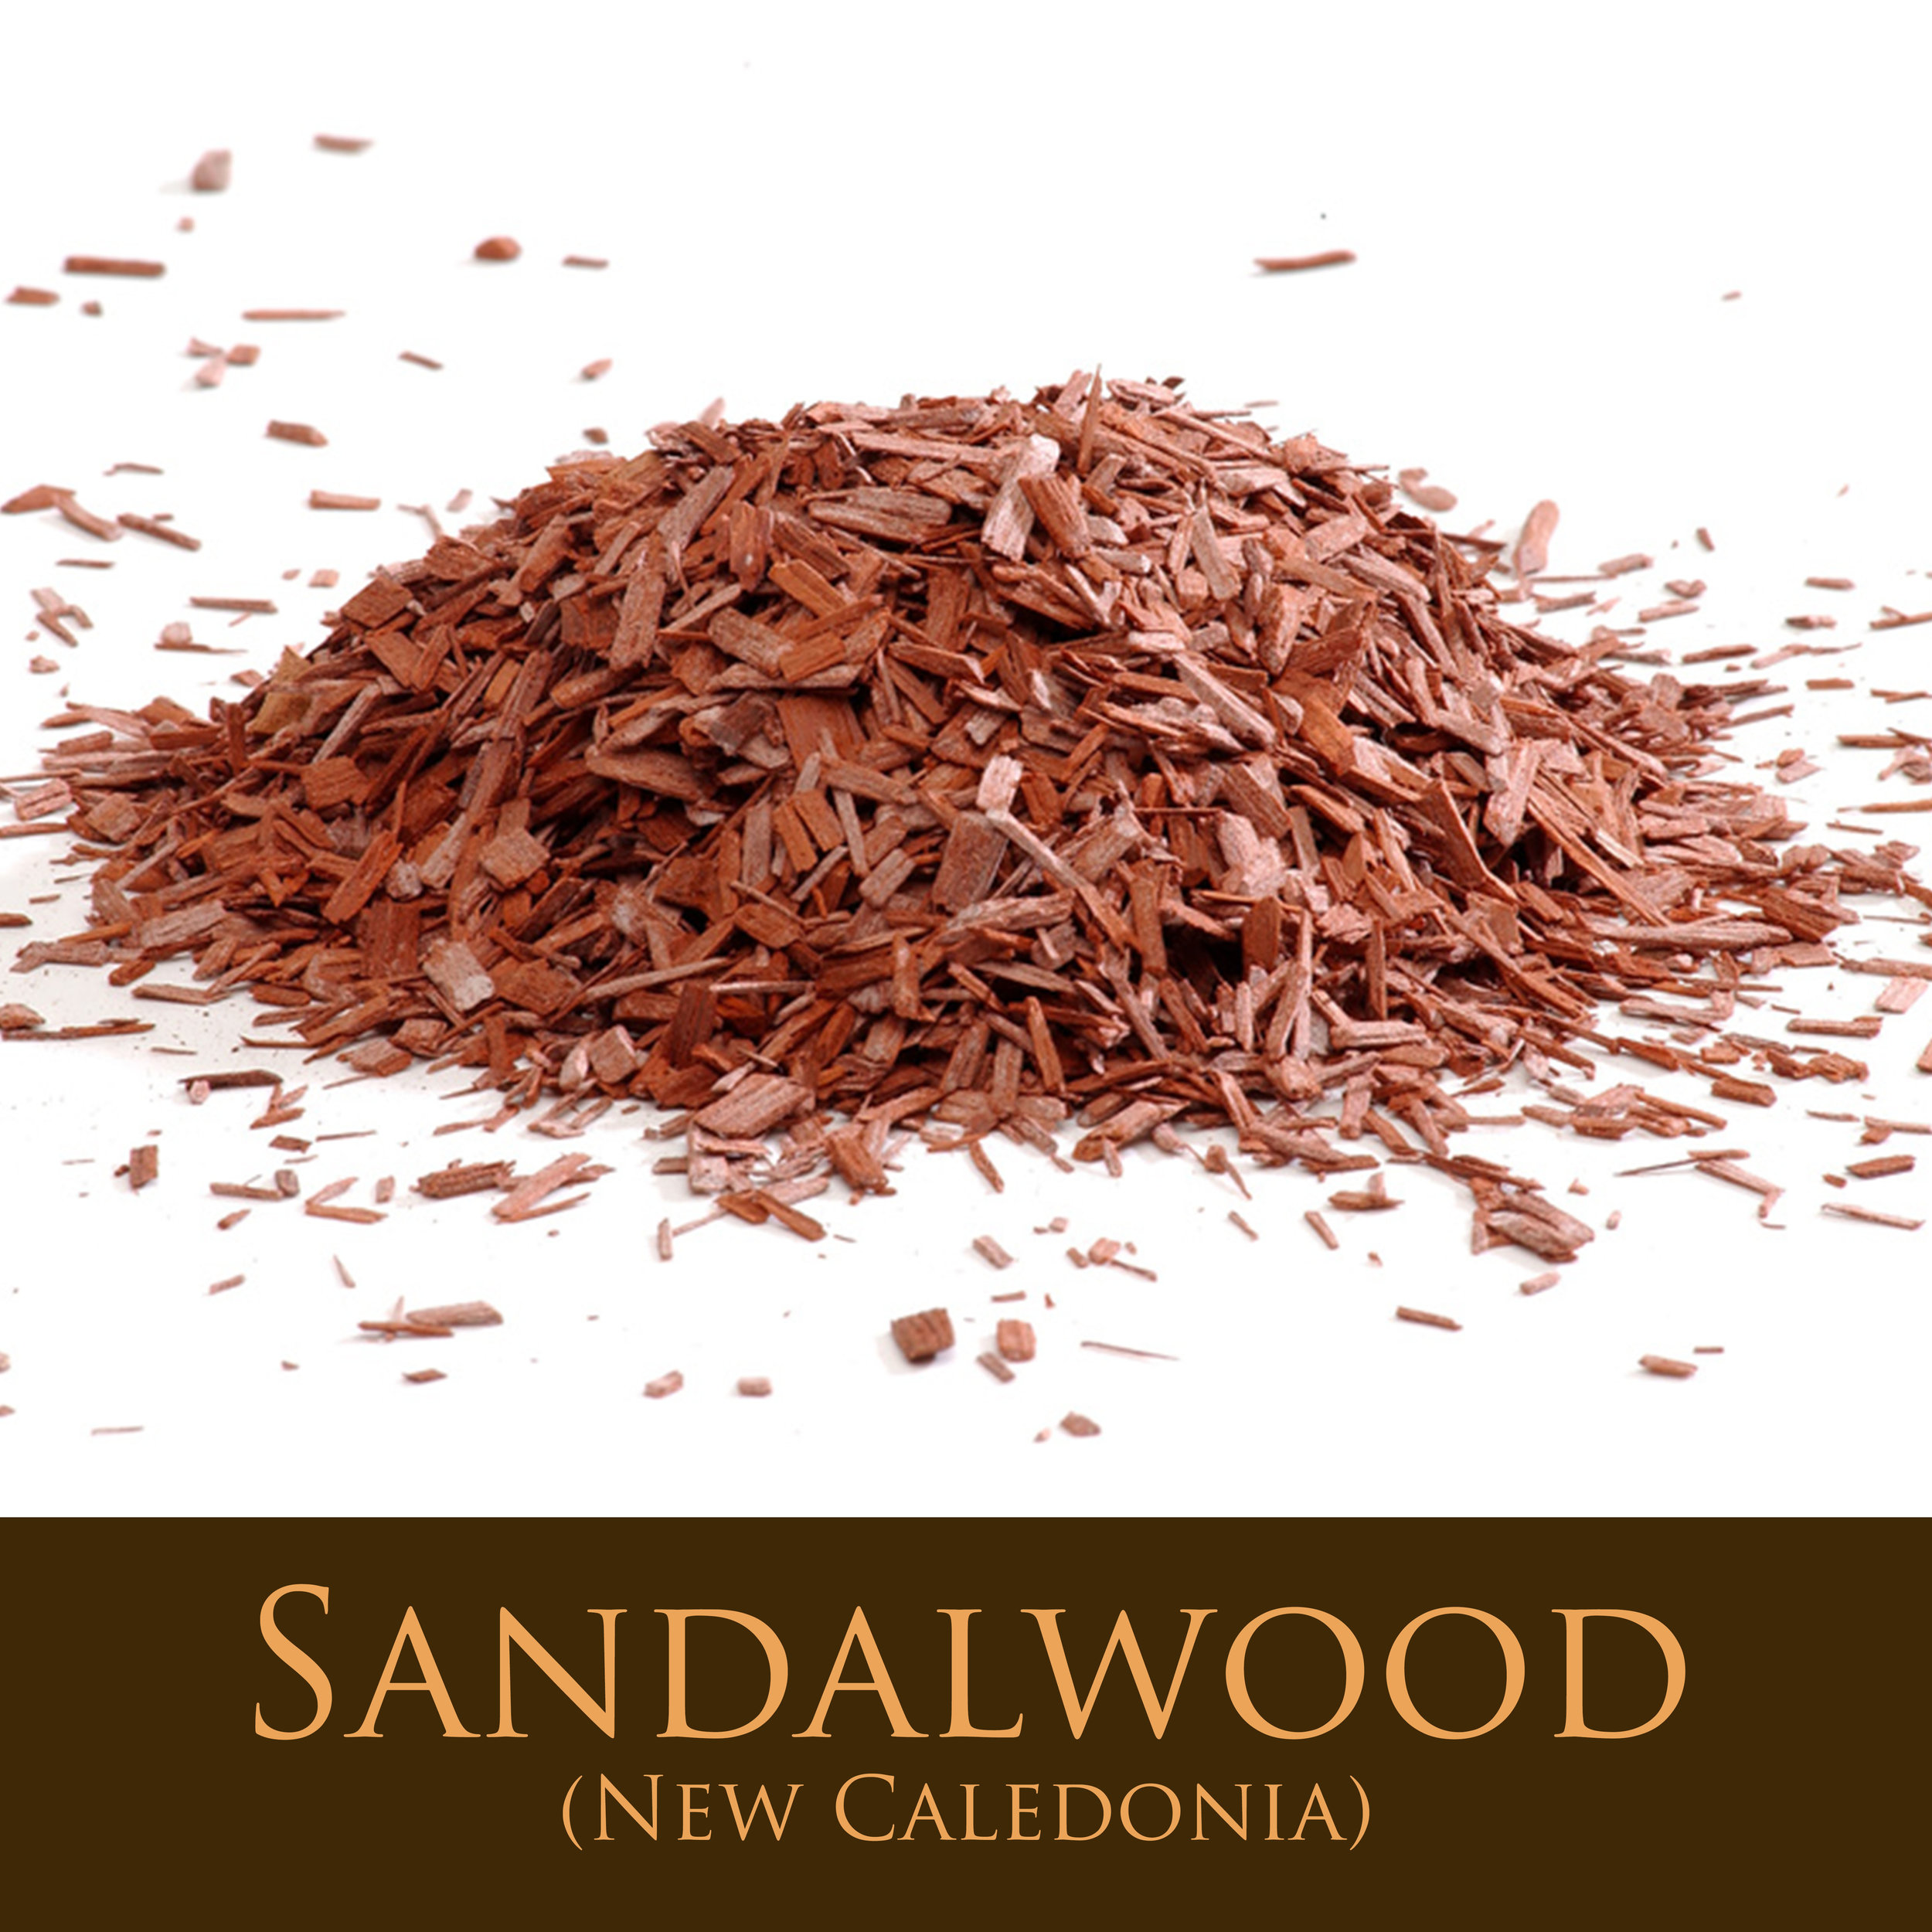 Sandalwood (New Caledonia).jpg